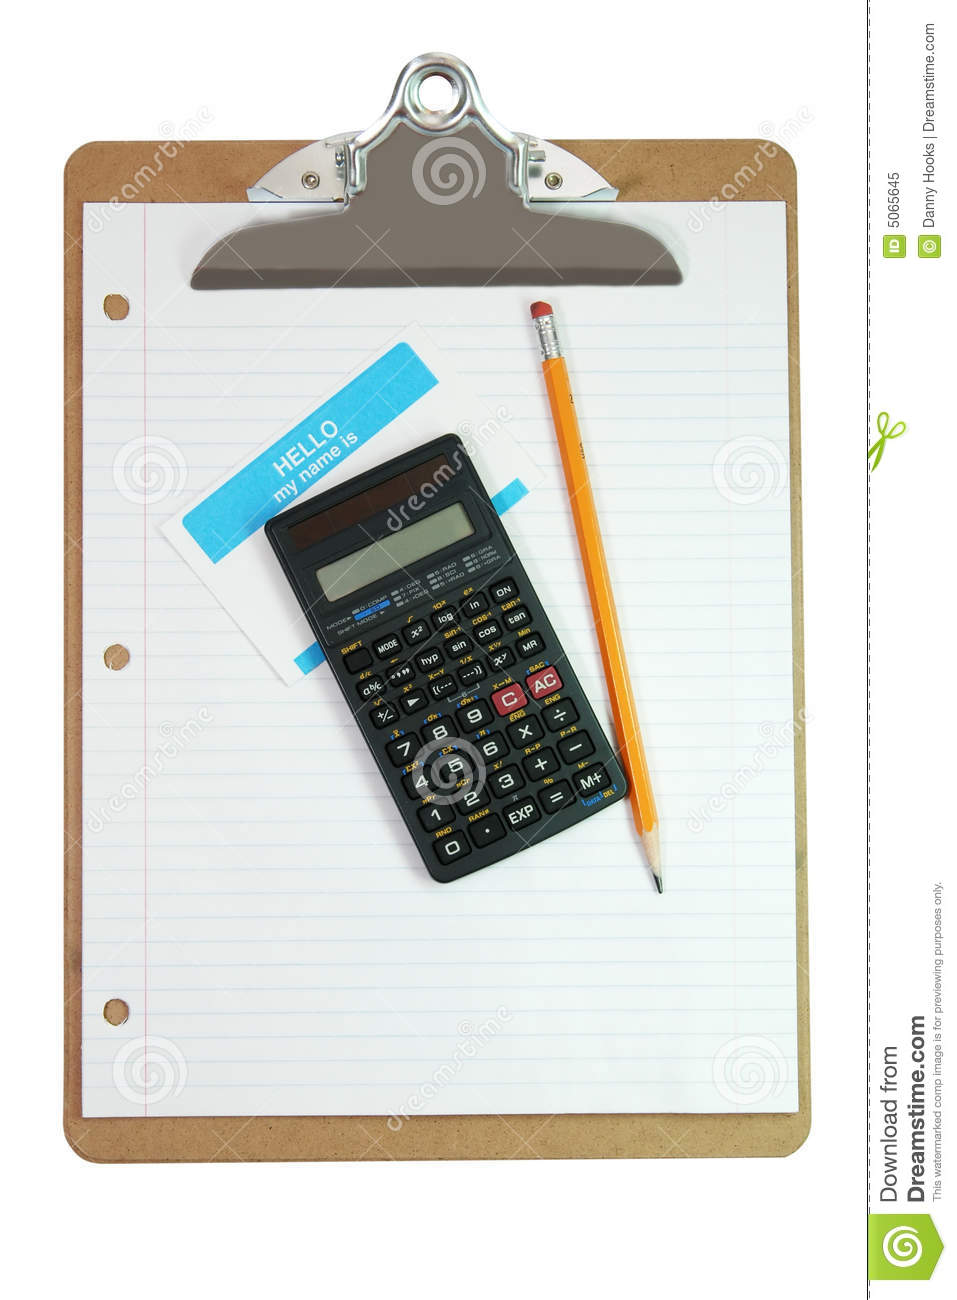 photo wallpaper calculator pencil - photo #43